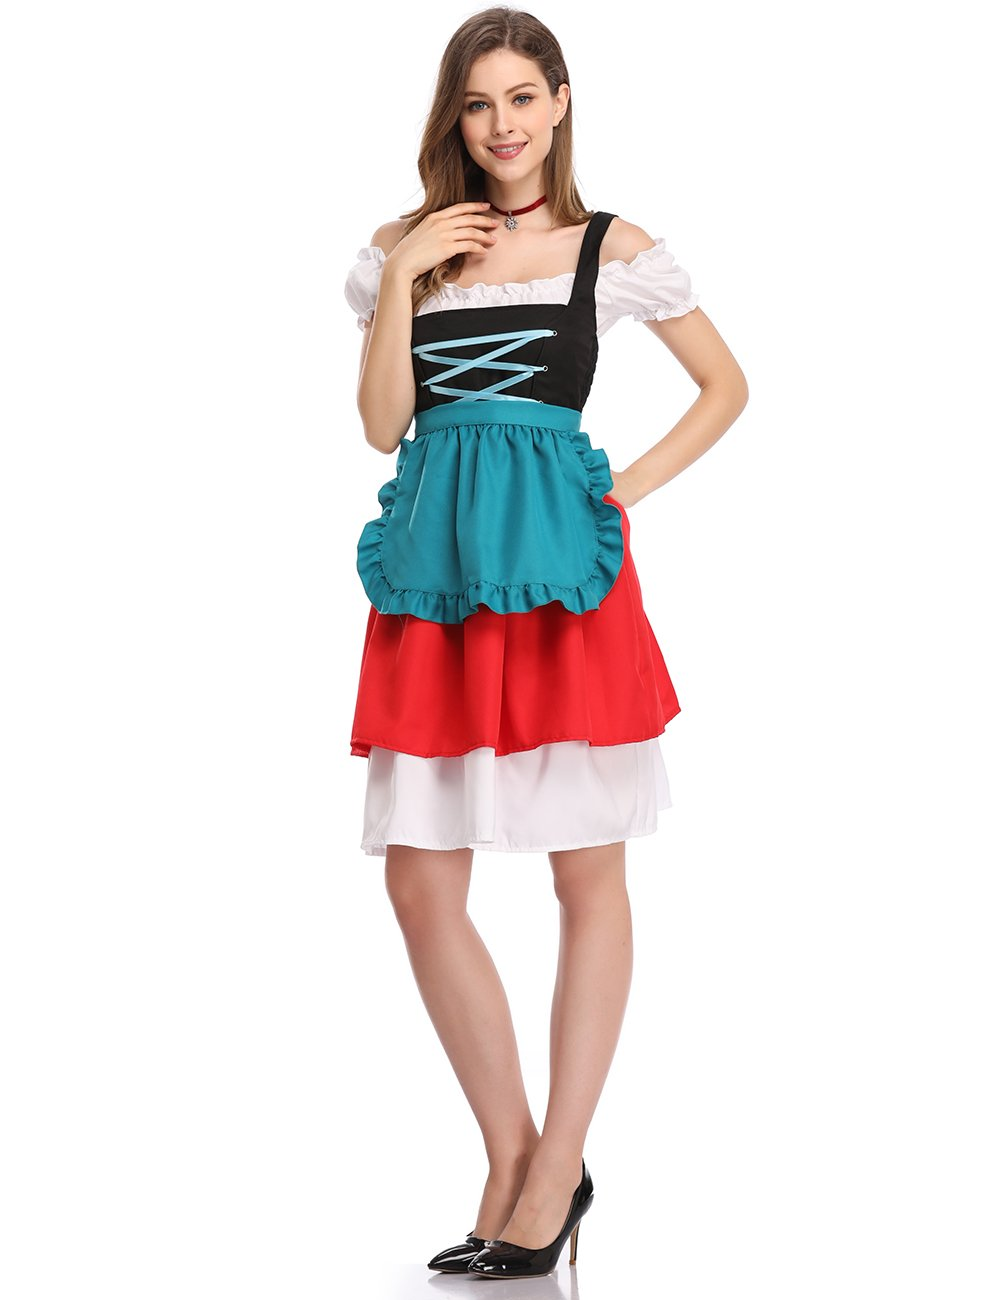 GloryStar Women's 3 Pcs German Dirndl Serving Wench Bavarian Oktoberfest Adult Costumes (S, Red/Green) by GloryStar (Image #3)